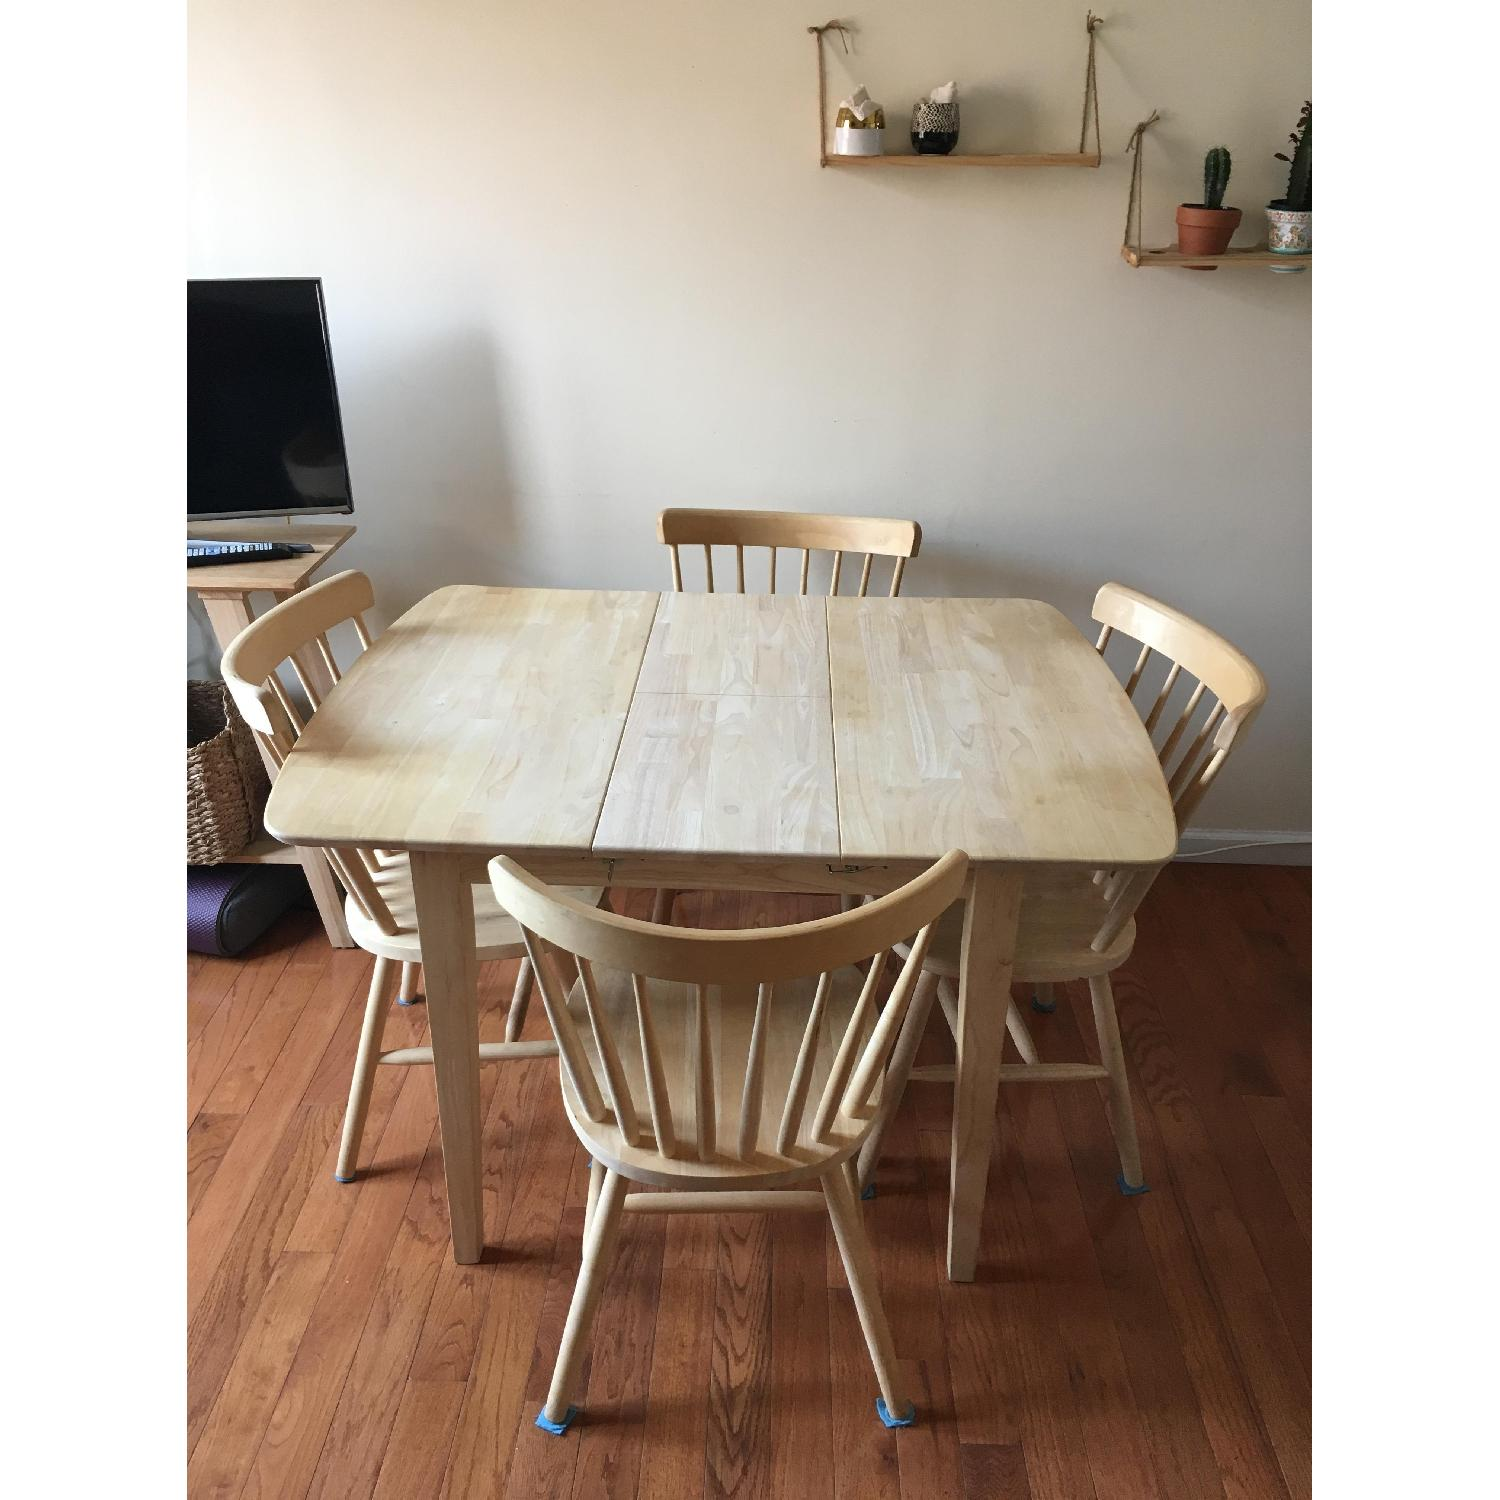 International Concepts Unfinished Wood Table w/ 4 Chairs - image-2